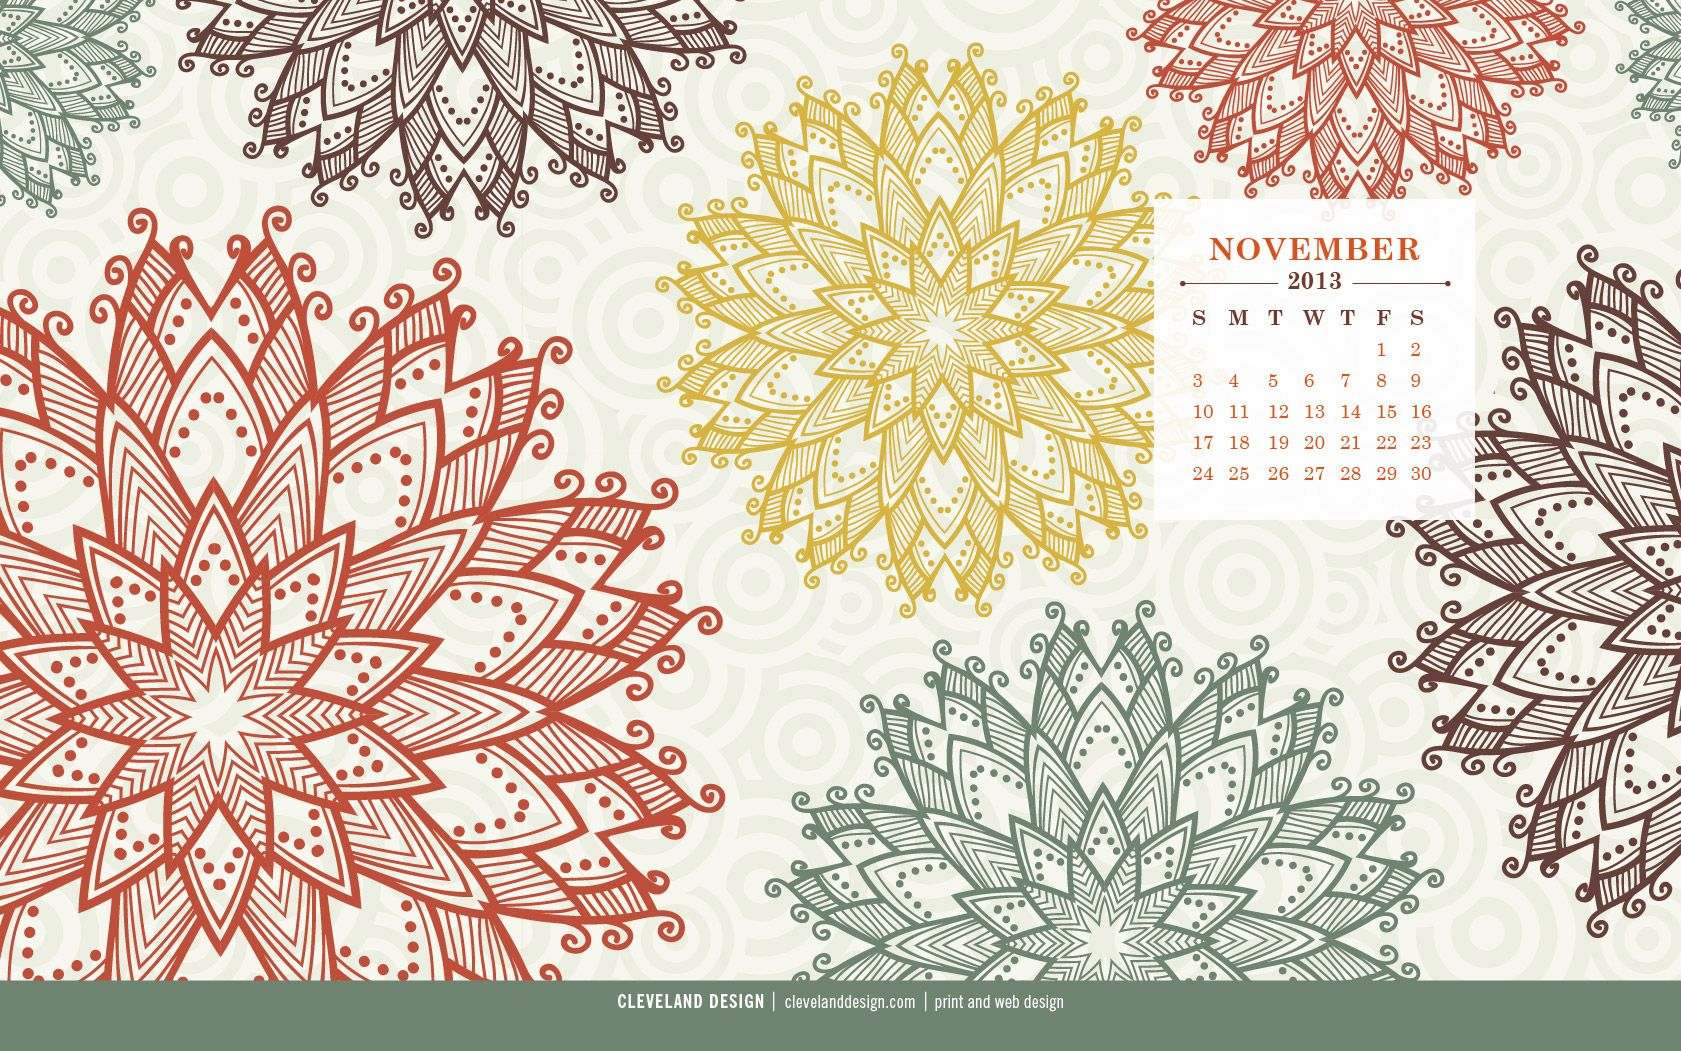 Calendar Design Wallpaper : November by cleveland design calendar wallpaper